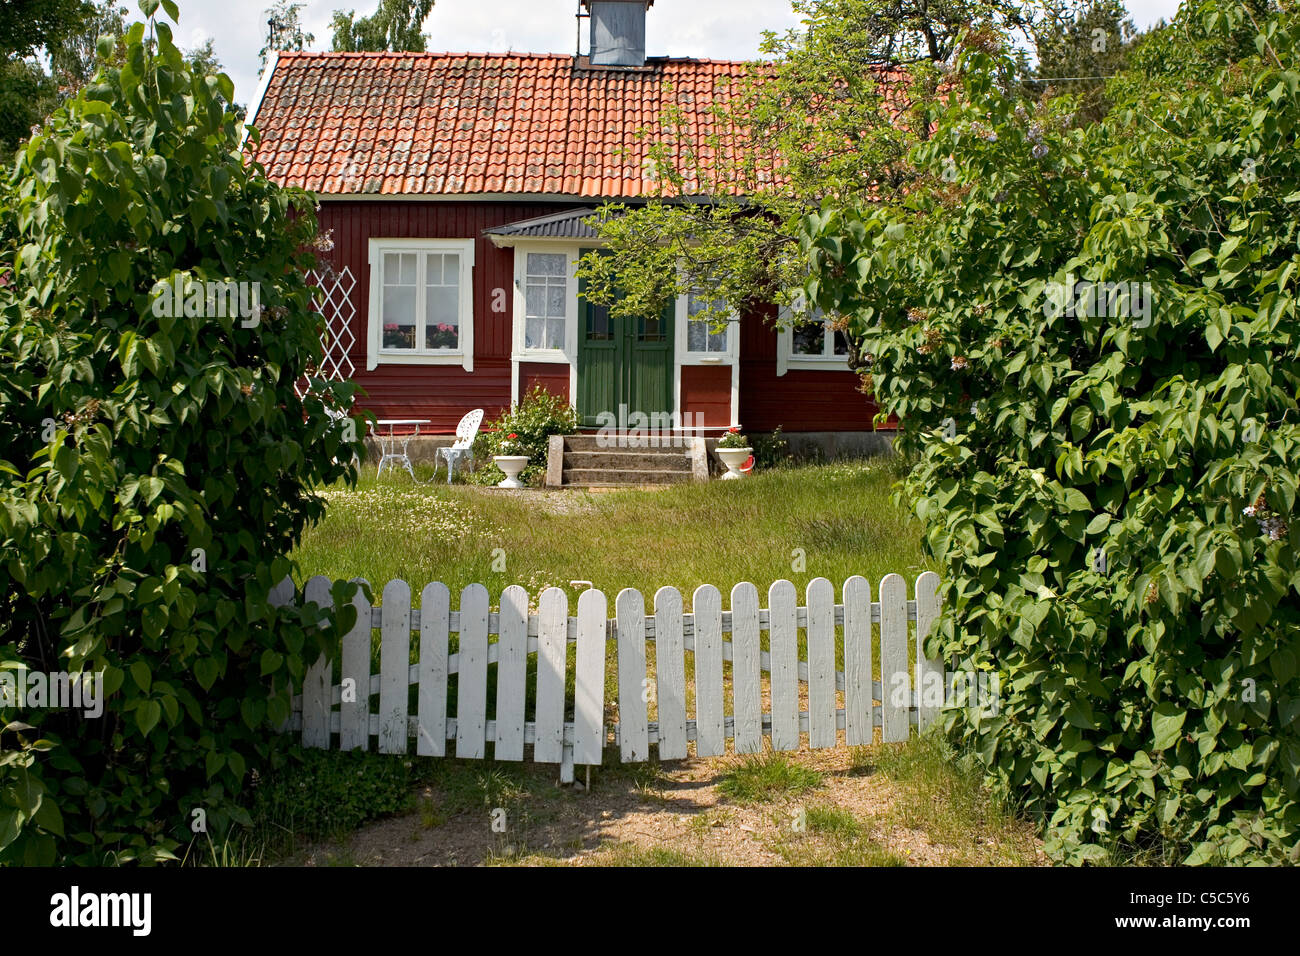 Countryside cottage with white fence and trees - Stock Image